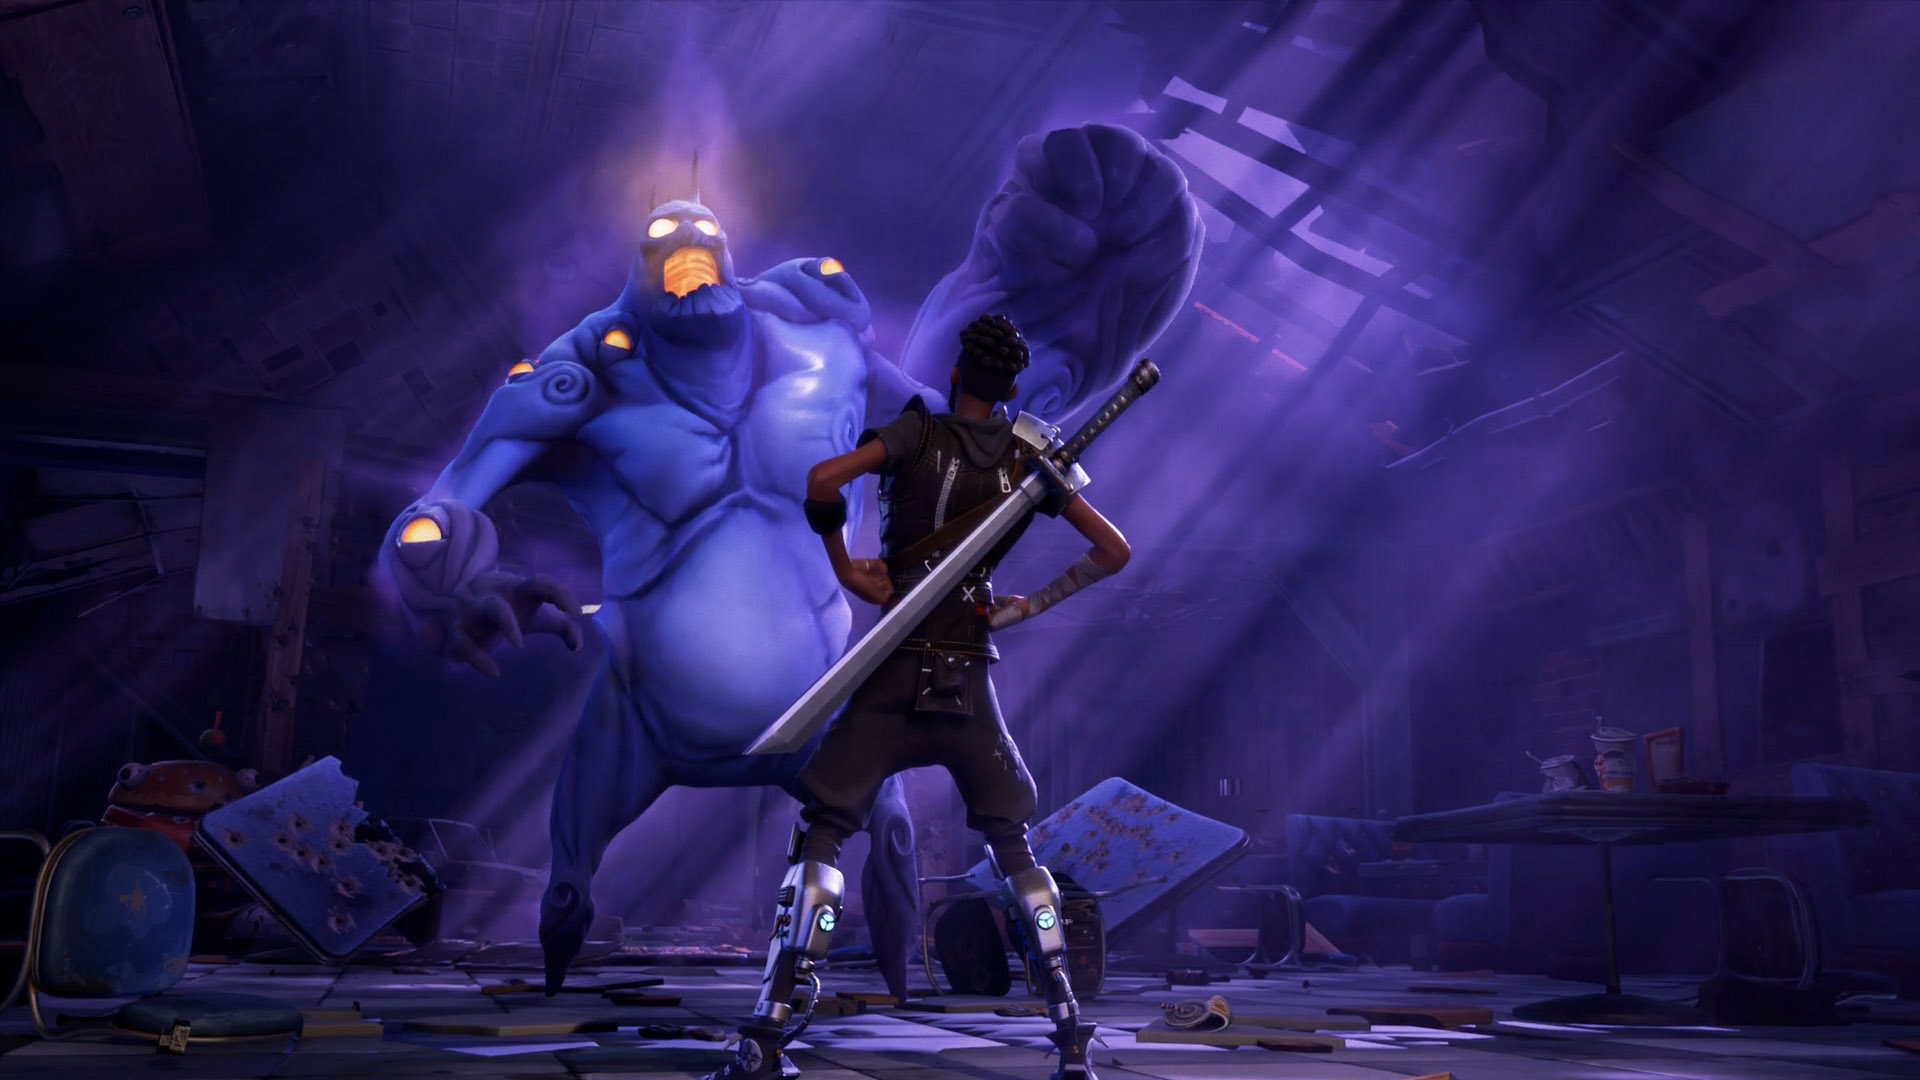 A Fortnite at Epic – fxguide